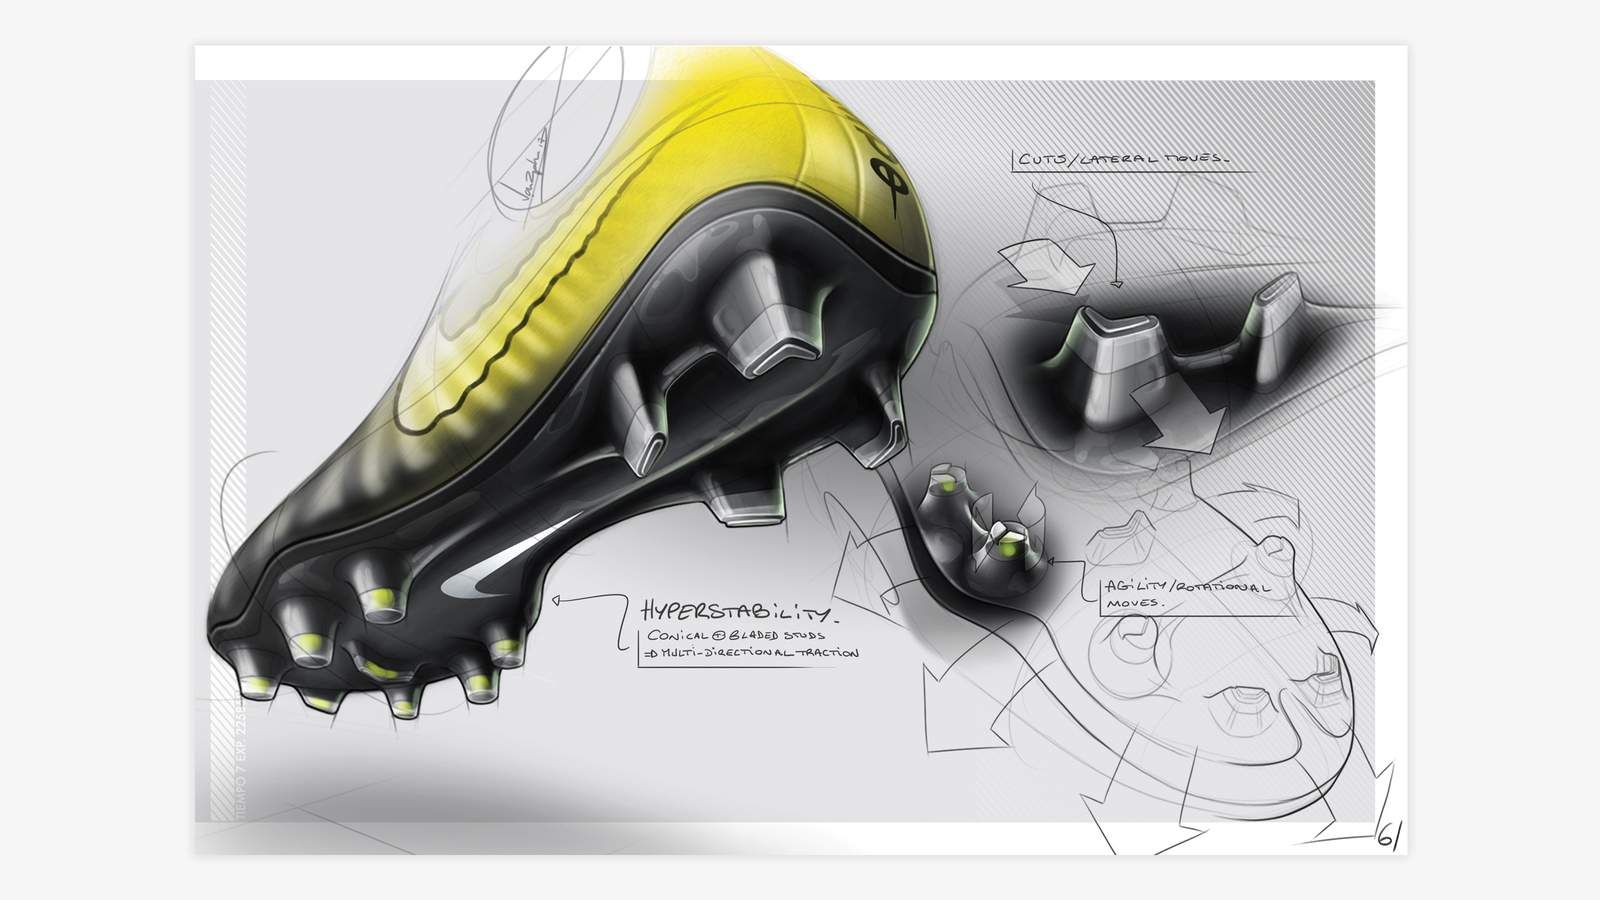 c4395e92c First-Ever Flyknit Tiempo - Nike Tiempo Legend VII Launched - Footy  Headlines